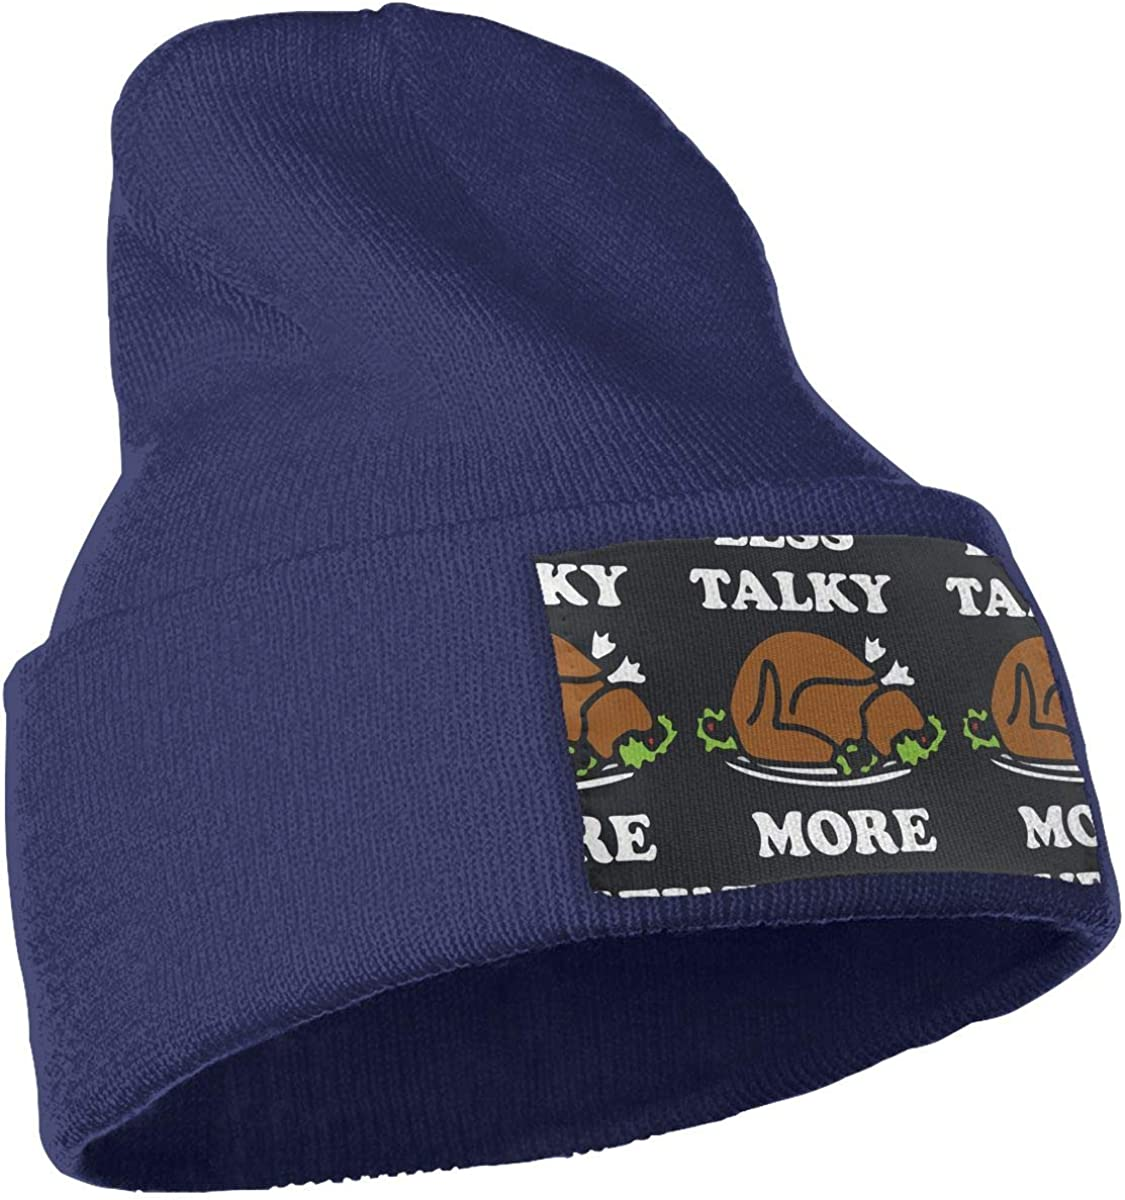 QZqDQ Less Talky More Turkey Unisex Fashion Knitted Hat Luxury Hip-Hop Cap